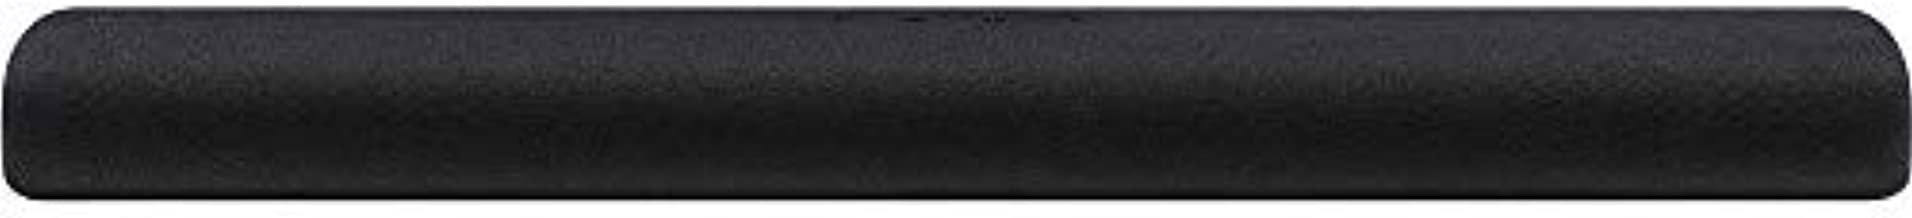 SAMSUNG HW-S60T 4.0ch All-in-One Soundbar with Side Horn Speakers Surround Sound & Alexa - (Renewed)